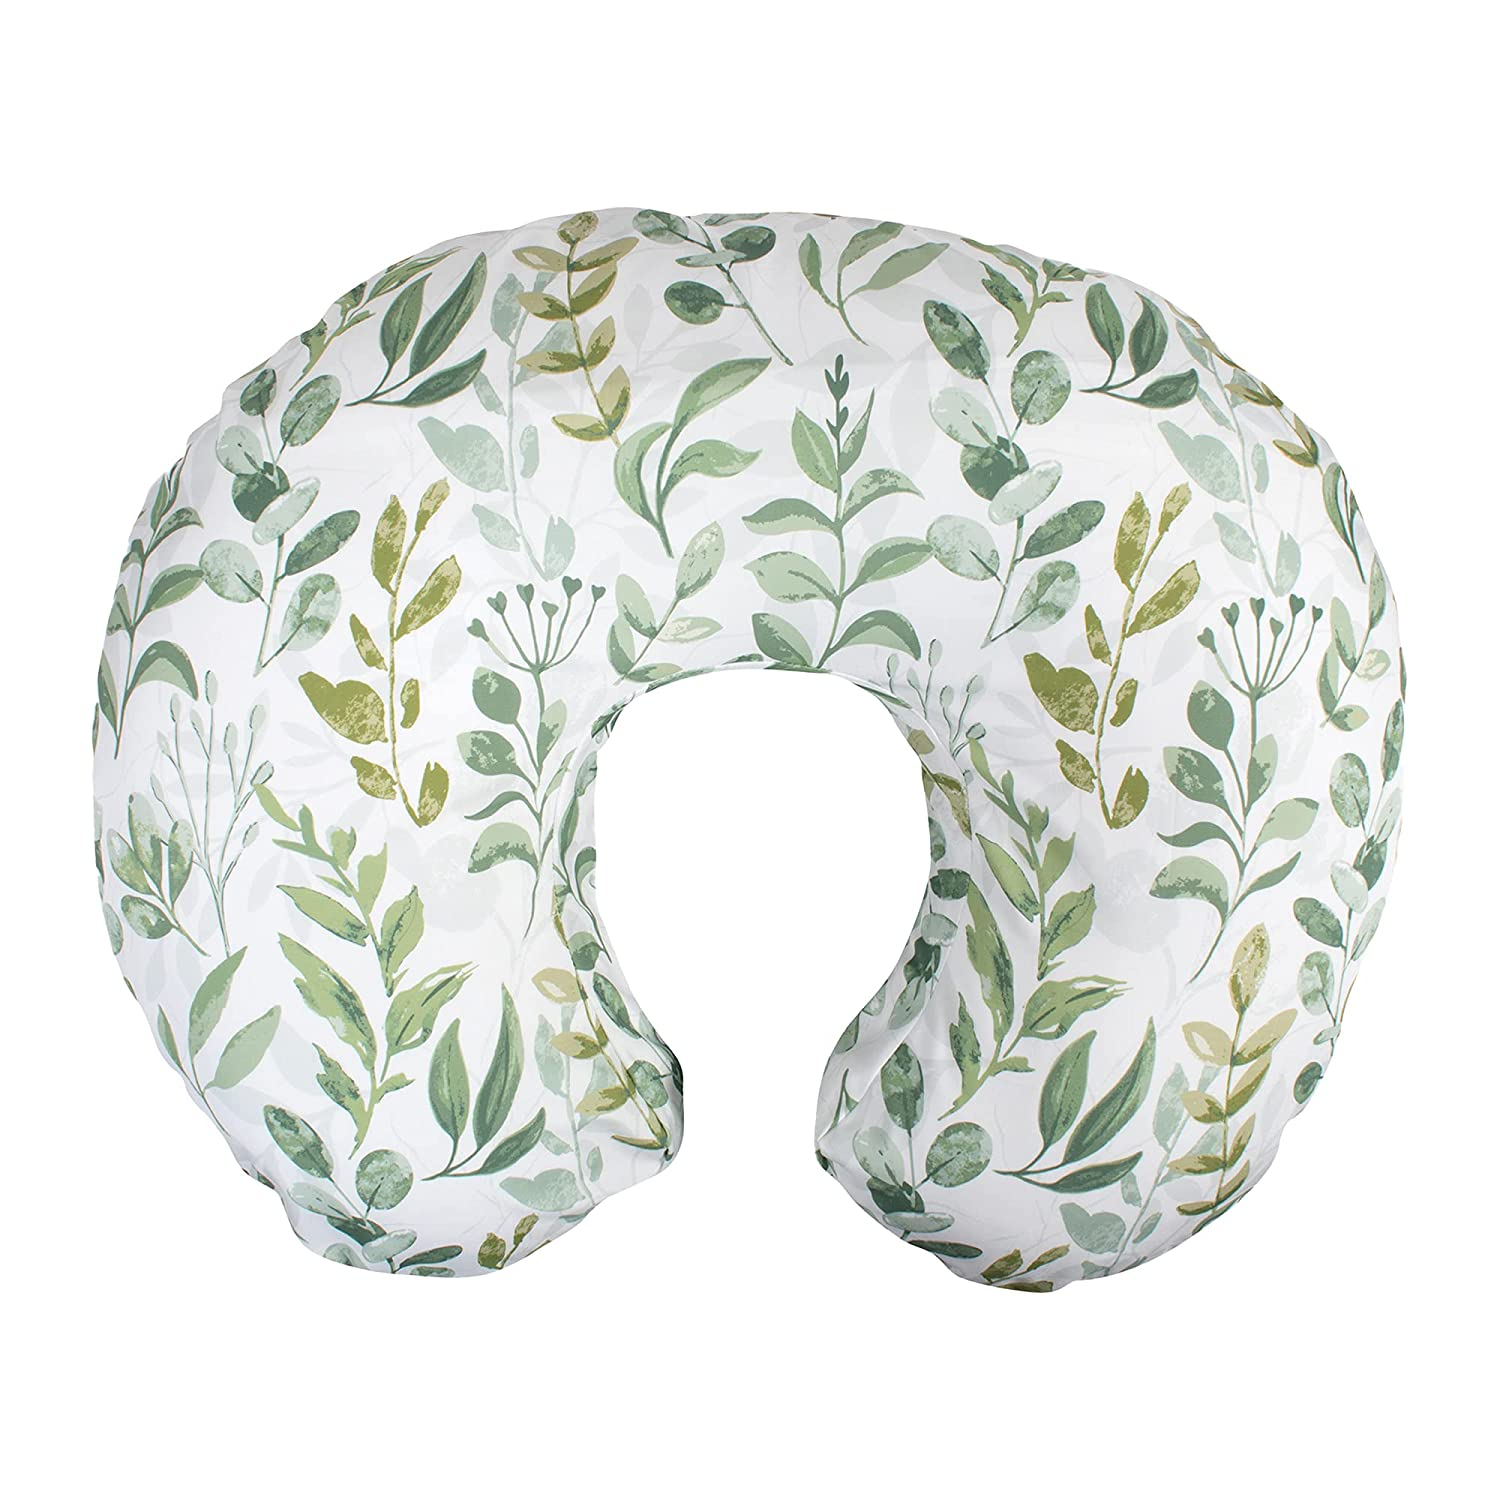 Boppy Nursing Pillow and Positioner—Original | Green Foliage | Breastfeeding, Bottle Feeding, Baby Support | with Removable Cotton Blend Cover